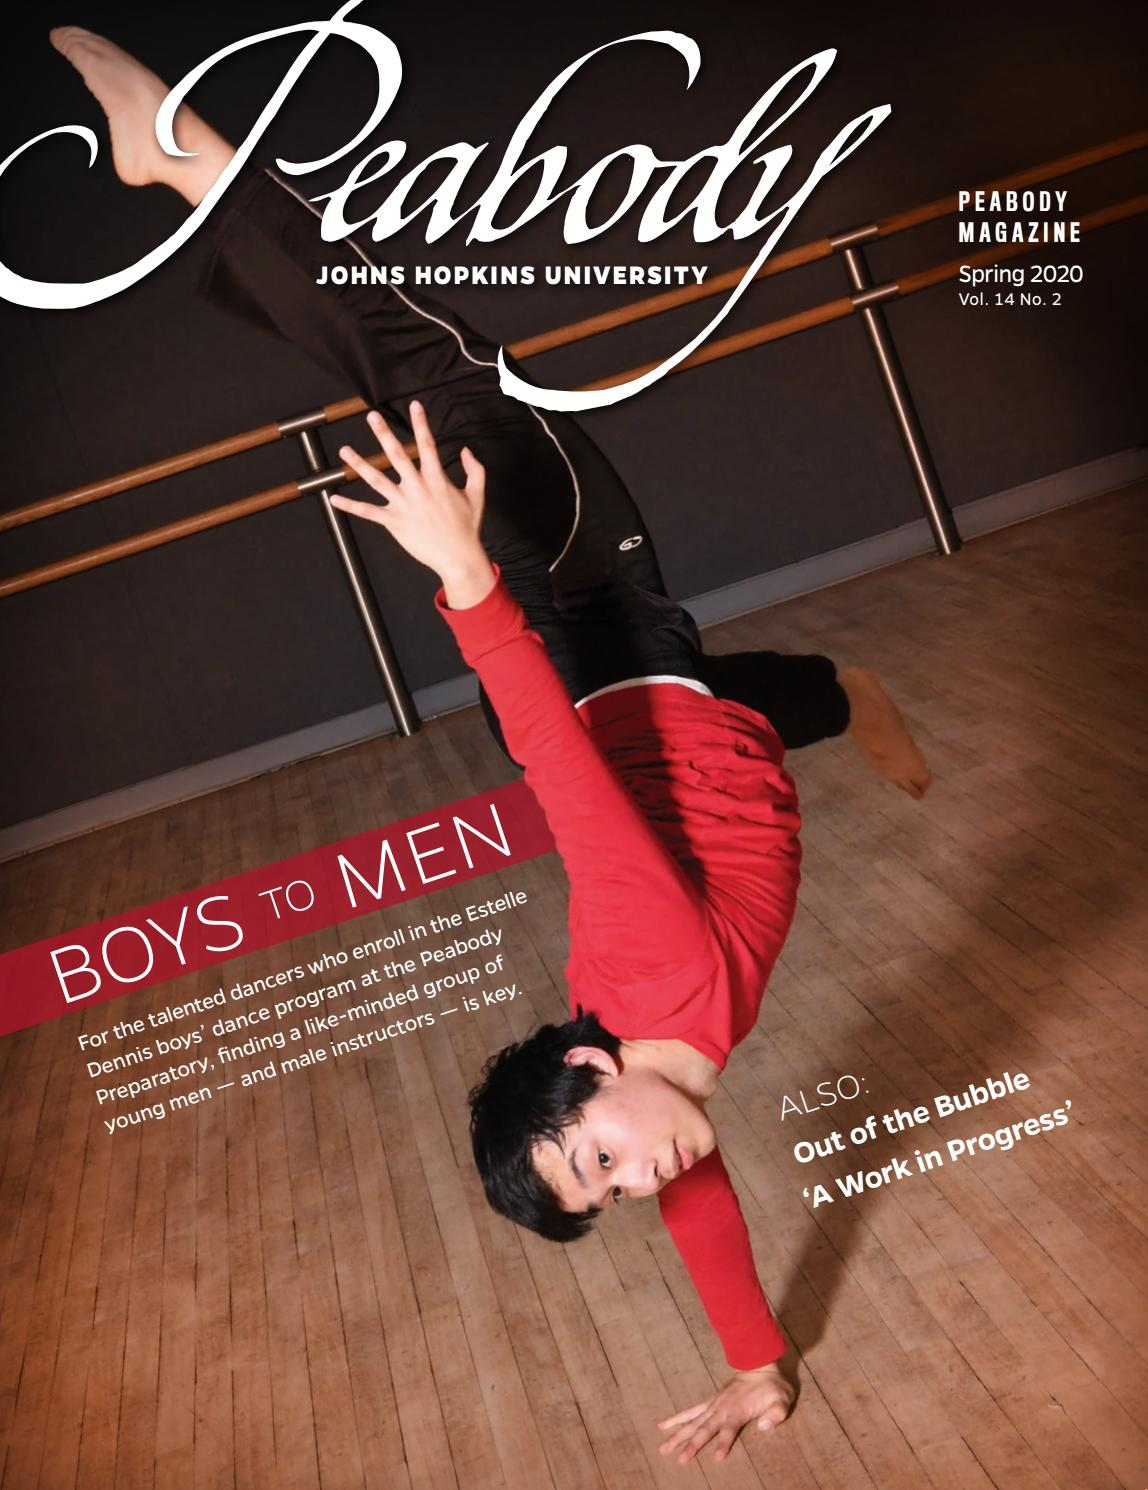 Peabody Ma Christmas Giveaway 2020 Peabody Magazine Spring 2020 Vol. 14, No. 2 by The Peabody